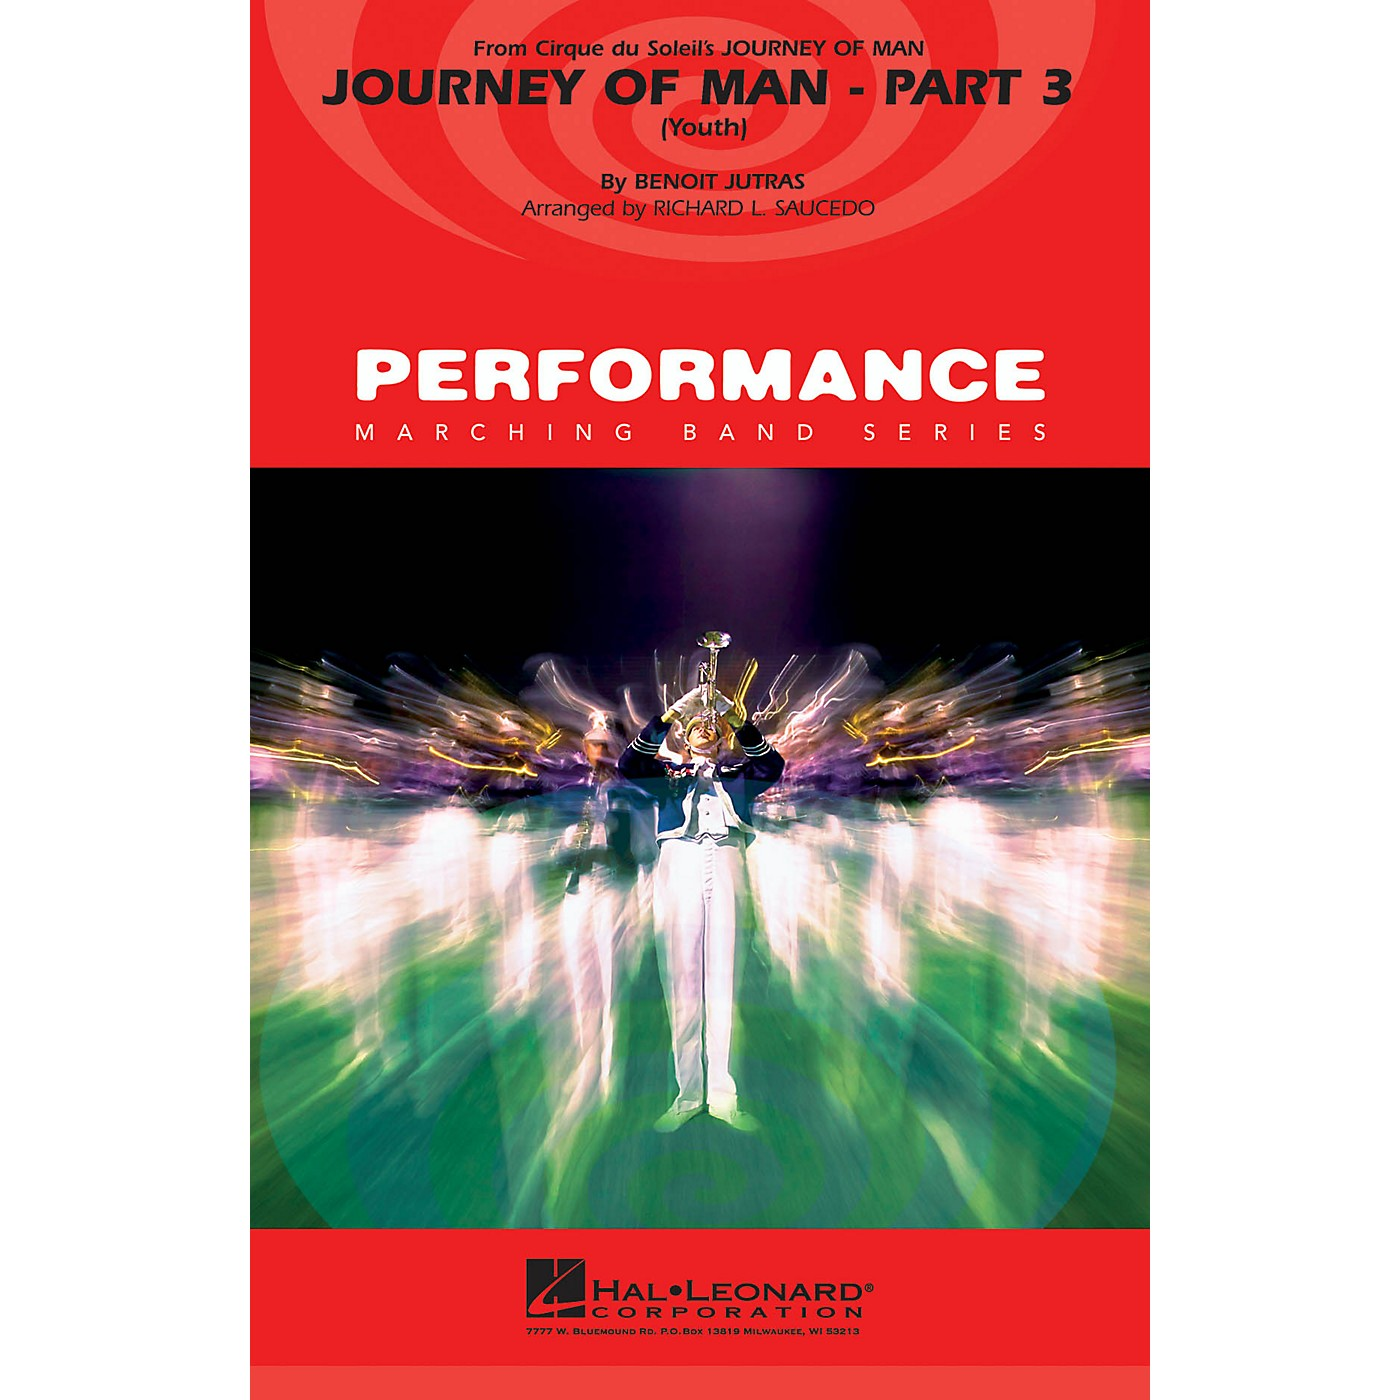 Hal Leonard Journey of Man - Part 3 (Youth) (Cirque du Soleil) Marching Band Level 4 Arranged by Richard L. Saucedo thumbnail